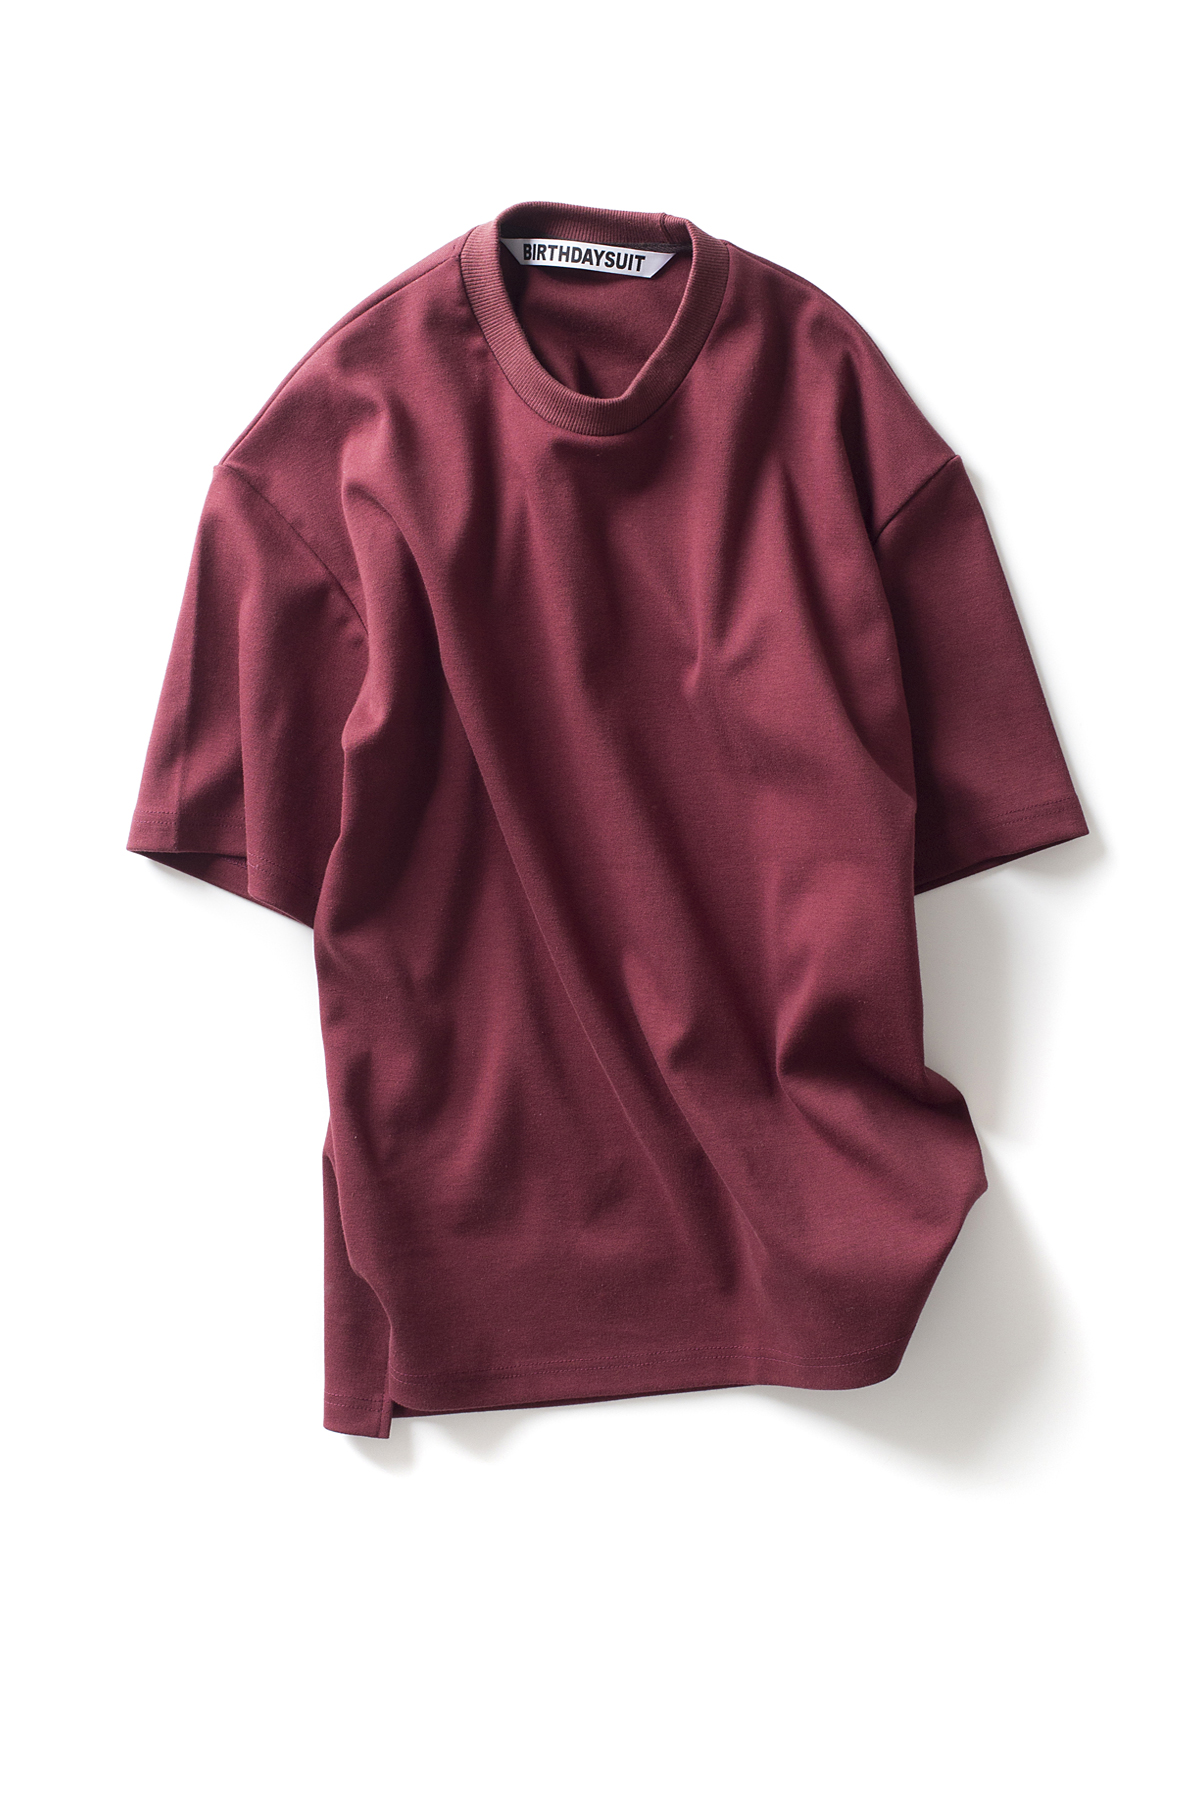 BIRTHDAYSUIT : Oversized T-Shirts (Burgundy)